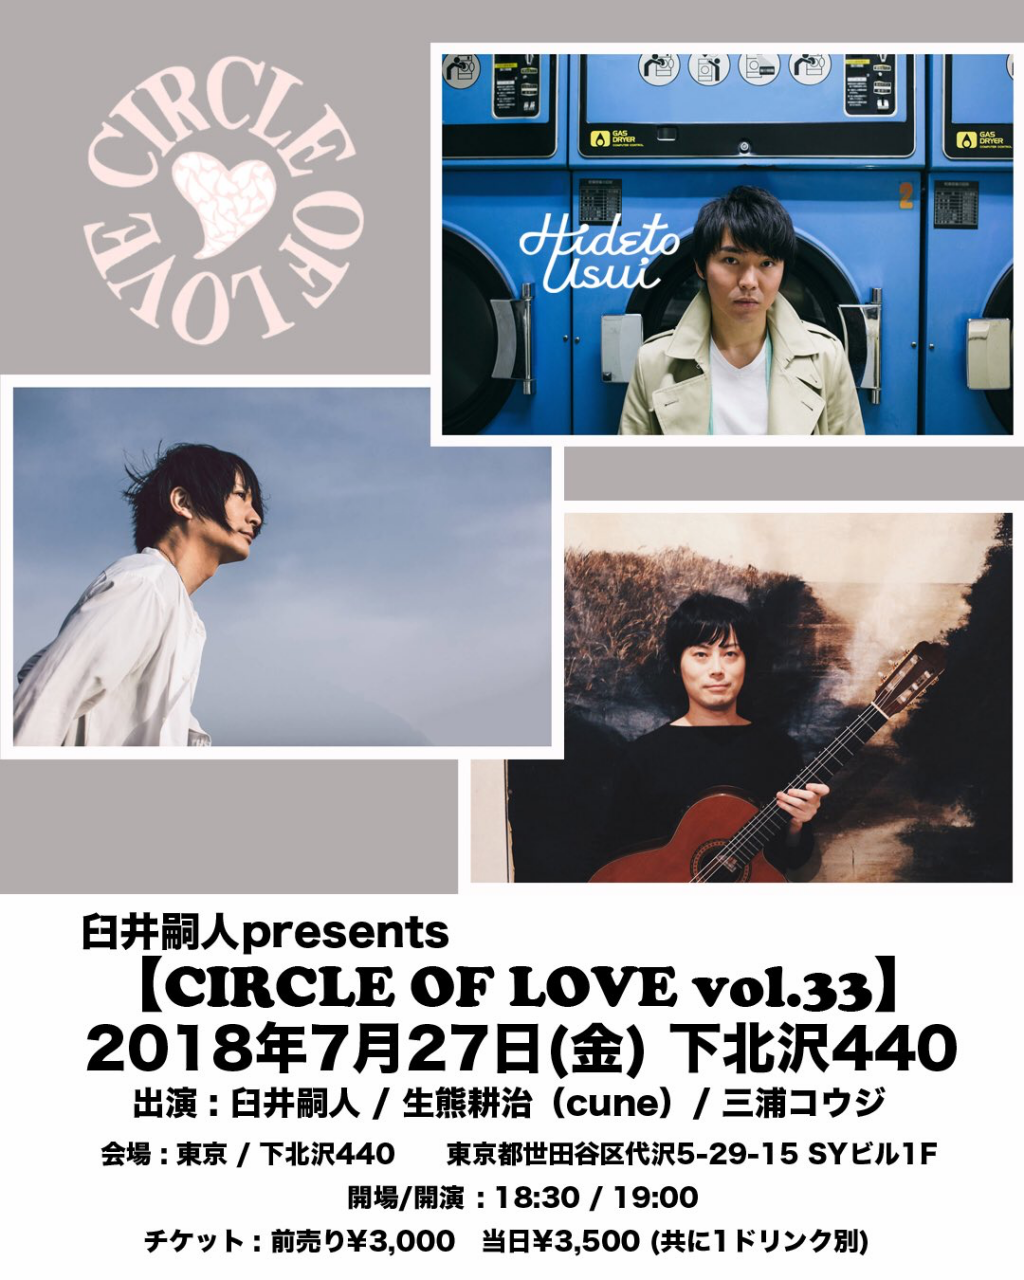 臼井嗣人presents【CIRCLE OF LOVE vol,33】